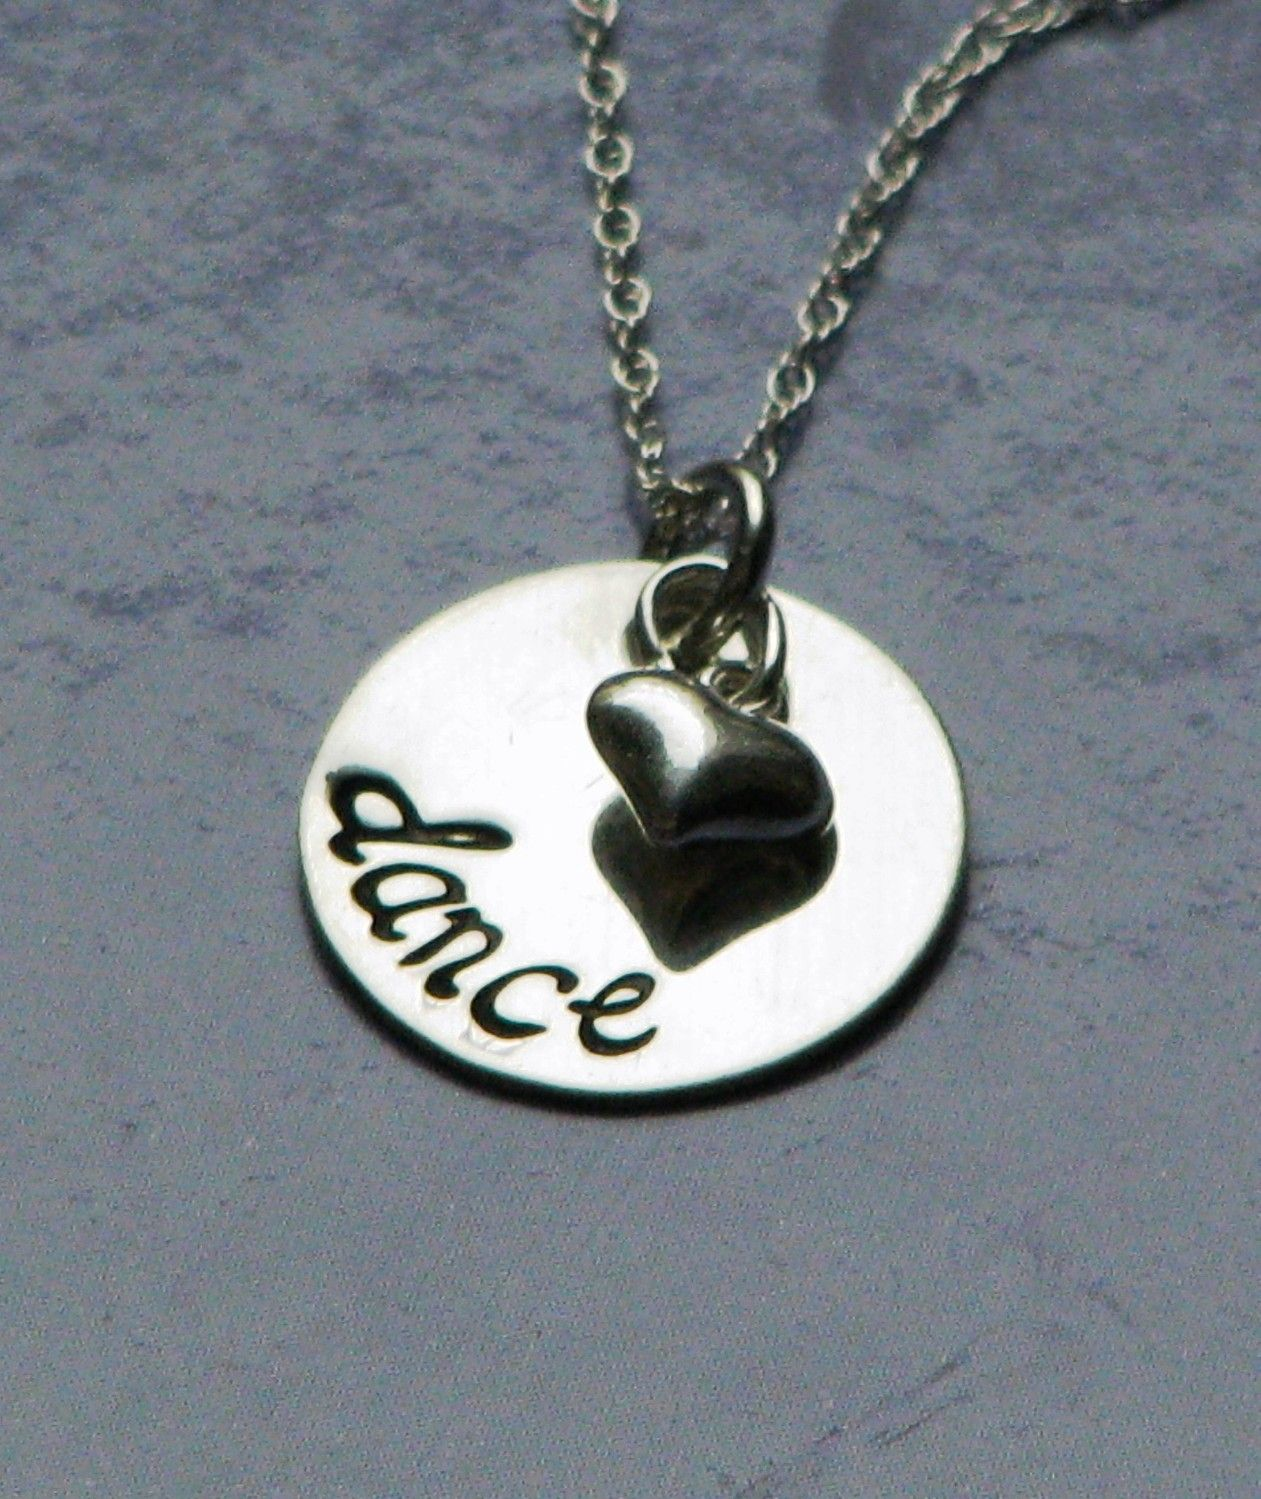 Dance sterling silver necklace with hand stamped pendants and dance sterling silver necklace with hand stamped pendants and sterling silver heart charm mozeypictures Gallery